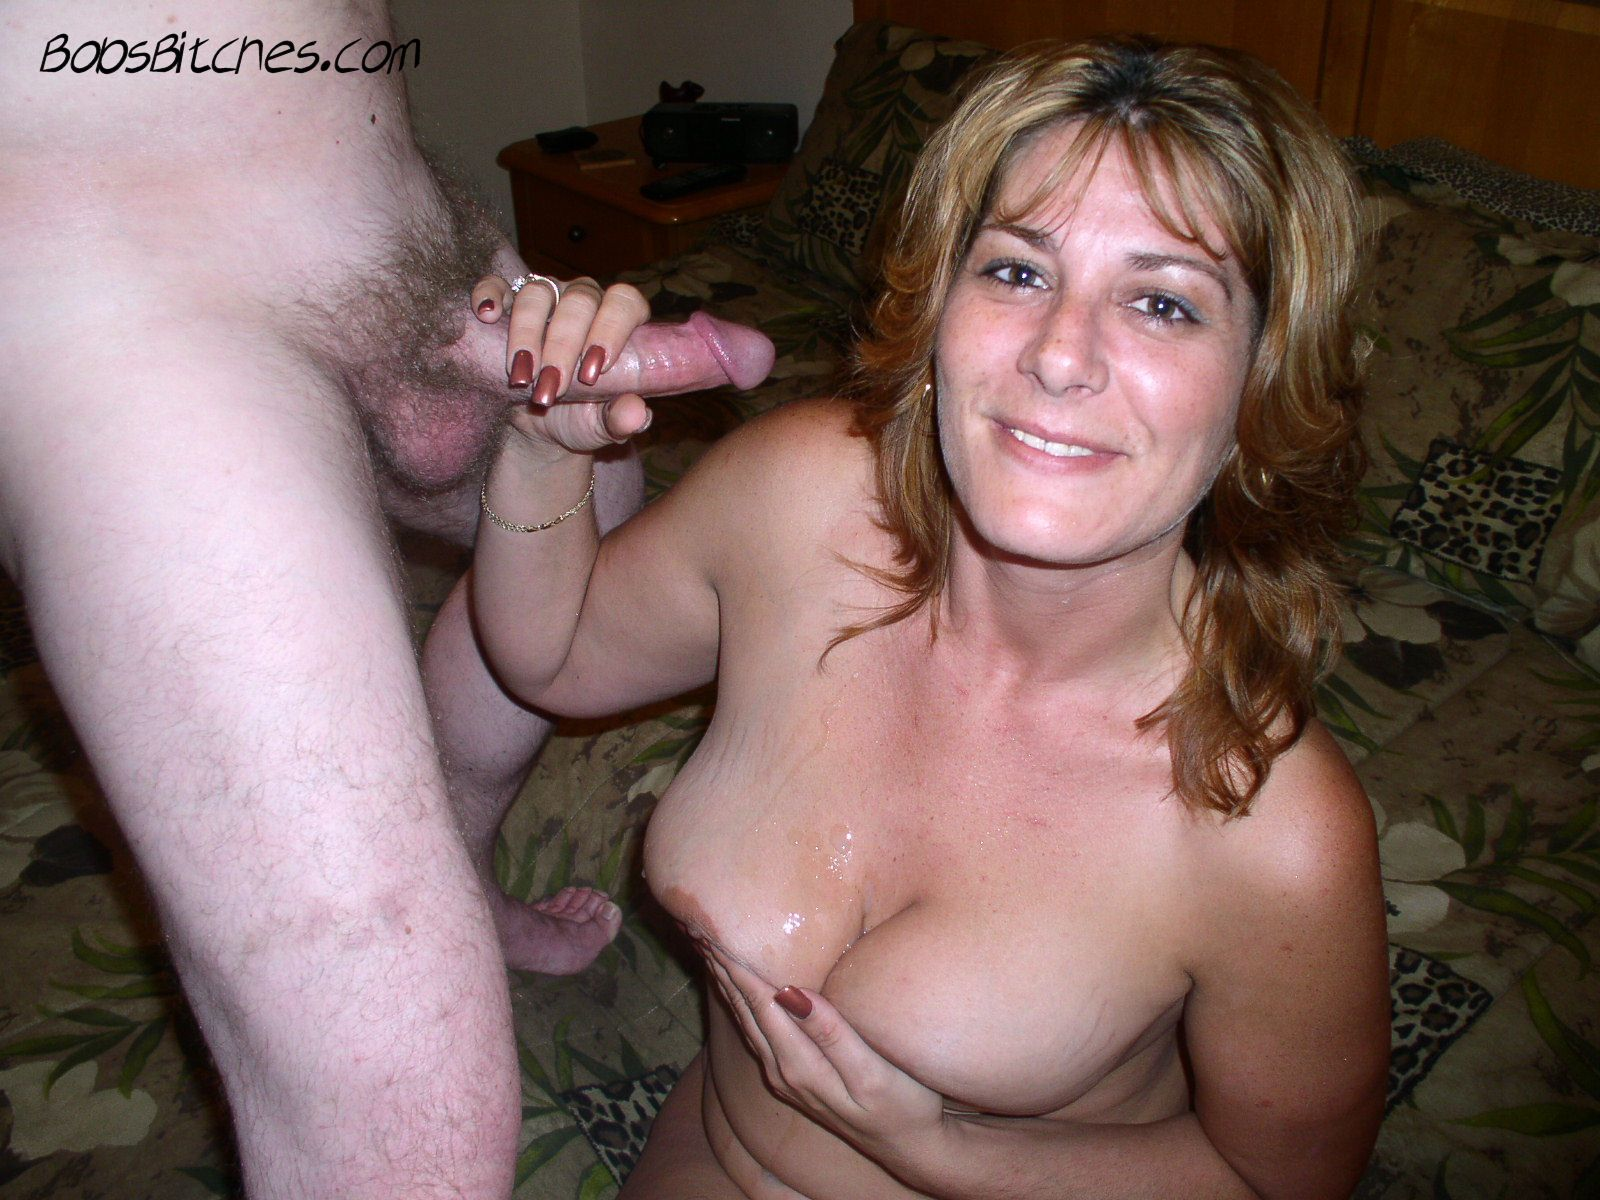 Big tit swinger wife covered in cum after sucking cock.